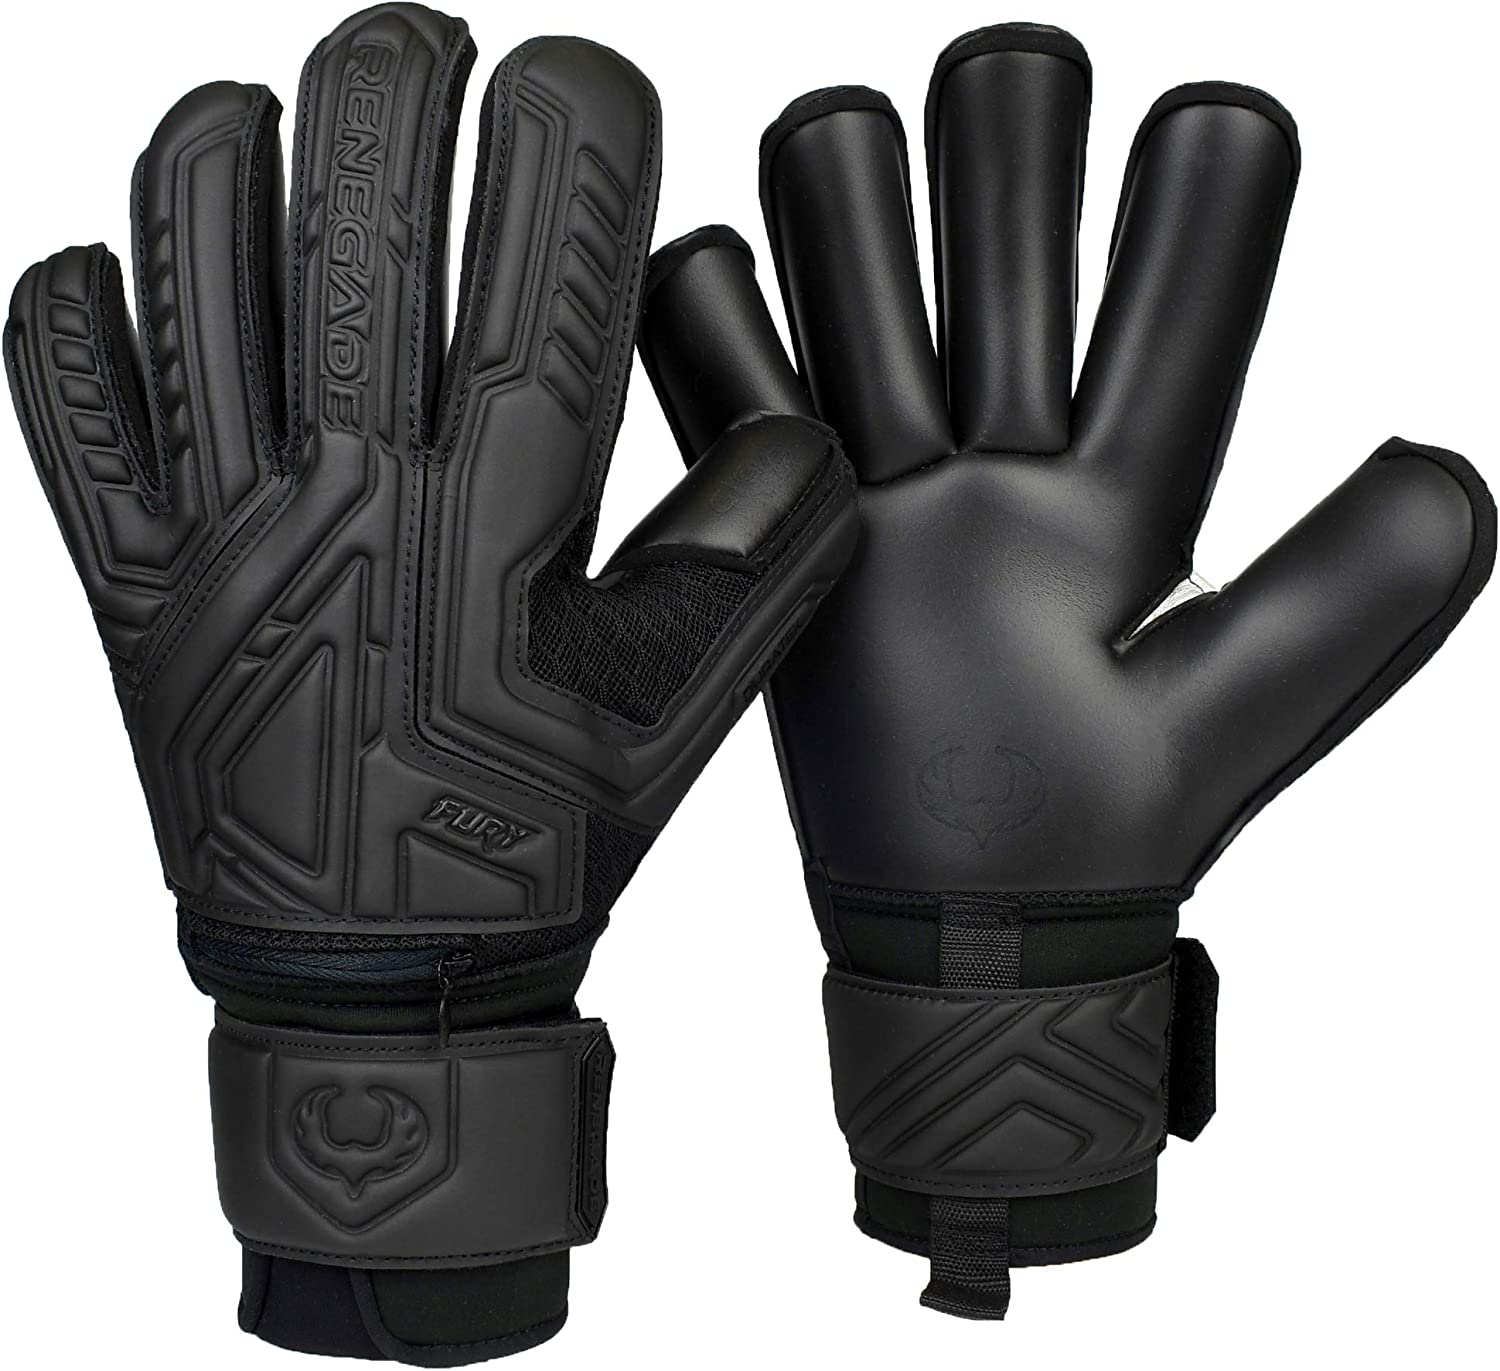 Renegade GK Fury Goalie Cheap mail order sales Gloves with Sizes 7 famous 7-11 Microbe-Guard